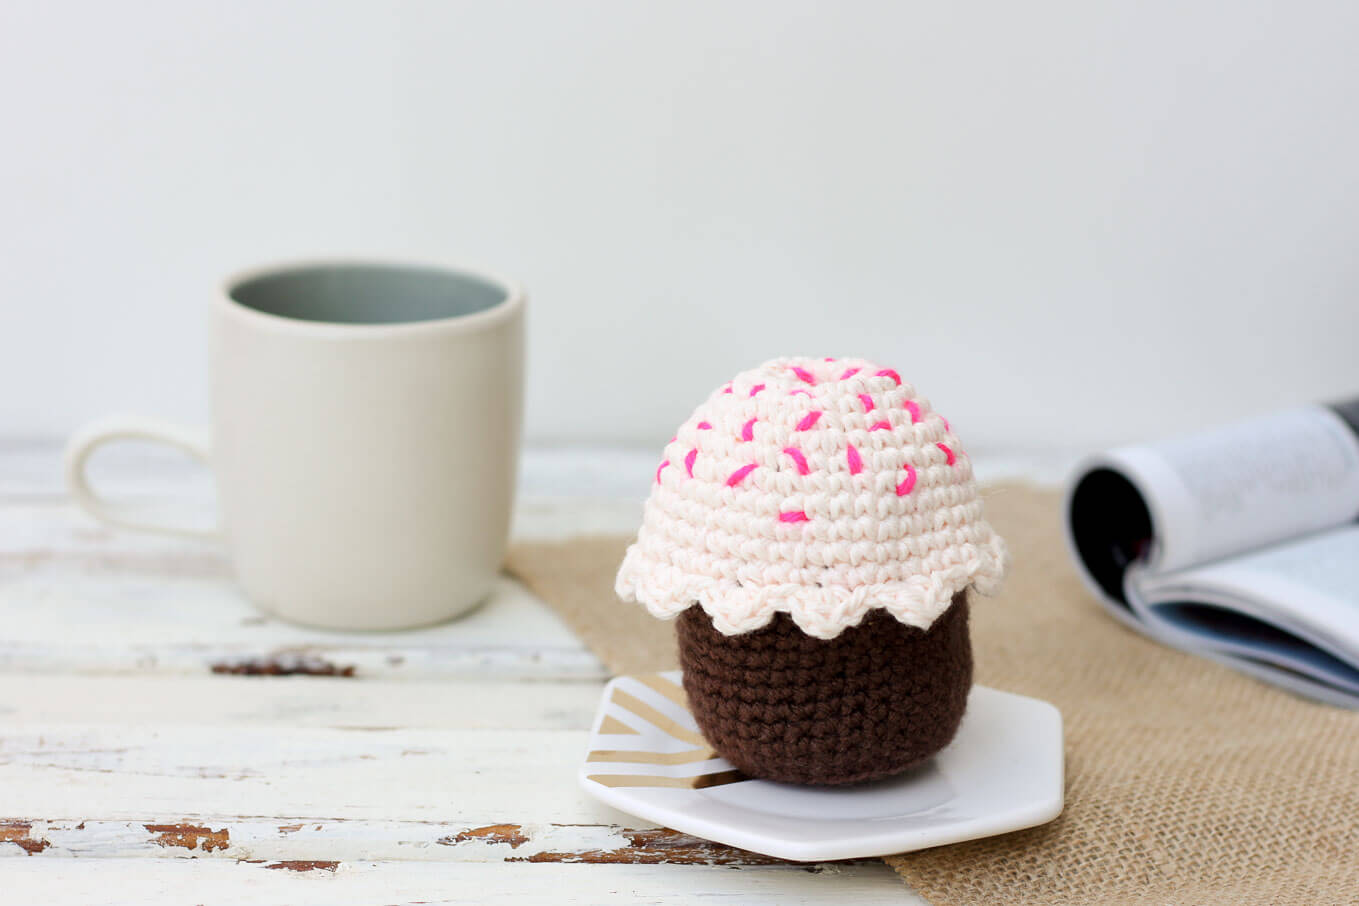 This free amigurumi crochet cupcake pattern makes a perfect DIY gift idea for a toddler or child. The birthday candle adds even more possibilities for play to this sweet toy. Or make it for a friend or co-worker when you need a calorie-free birthday gift! | MakeAndDoCrew.com